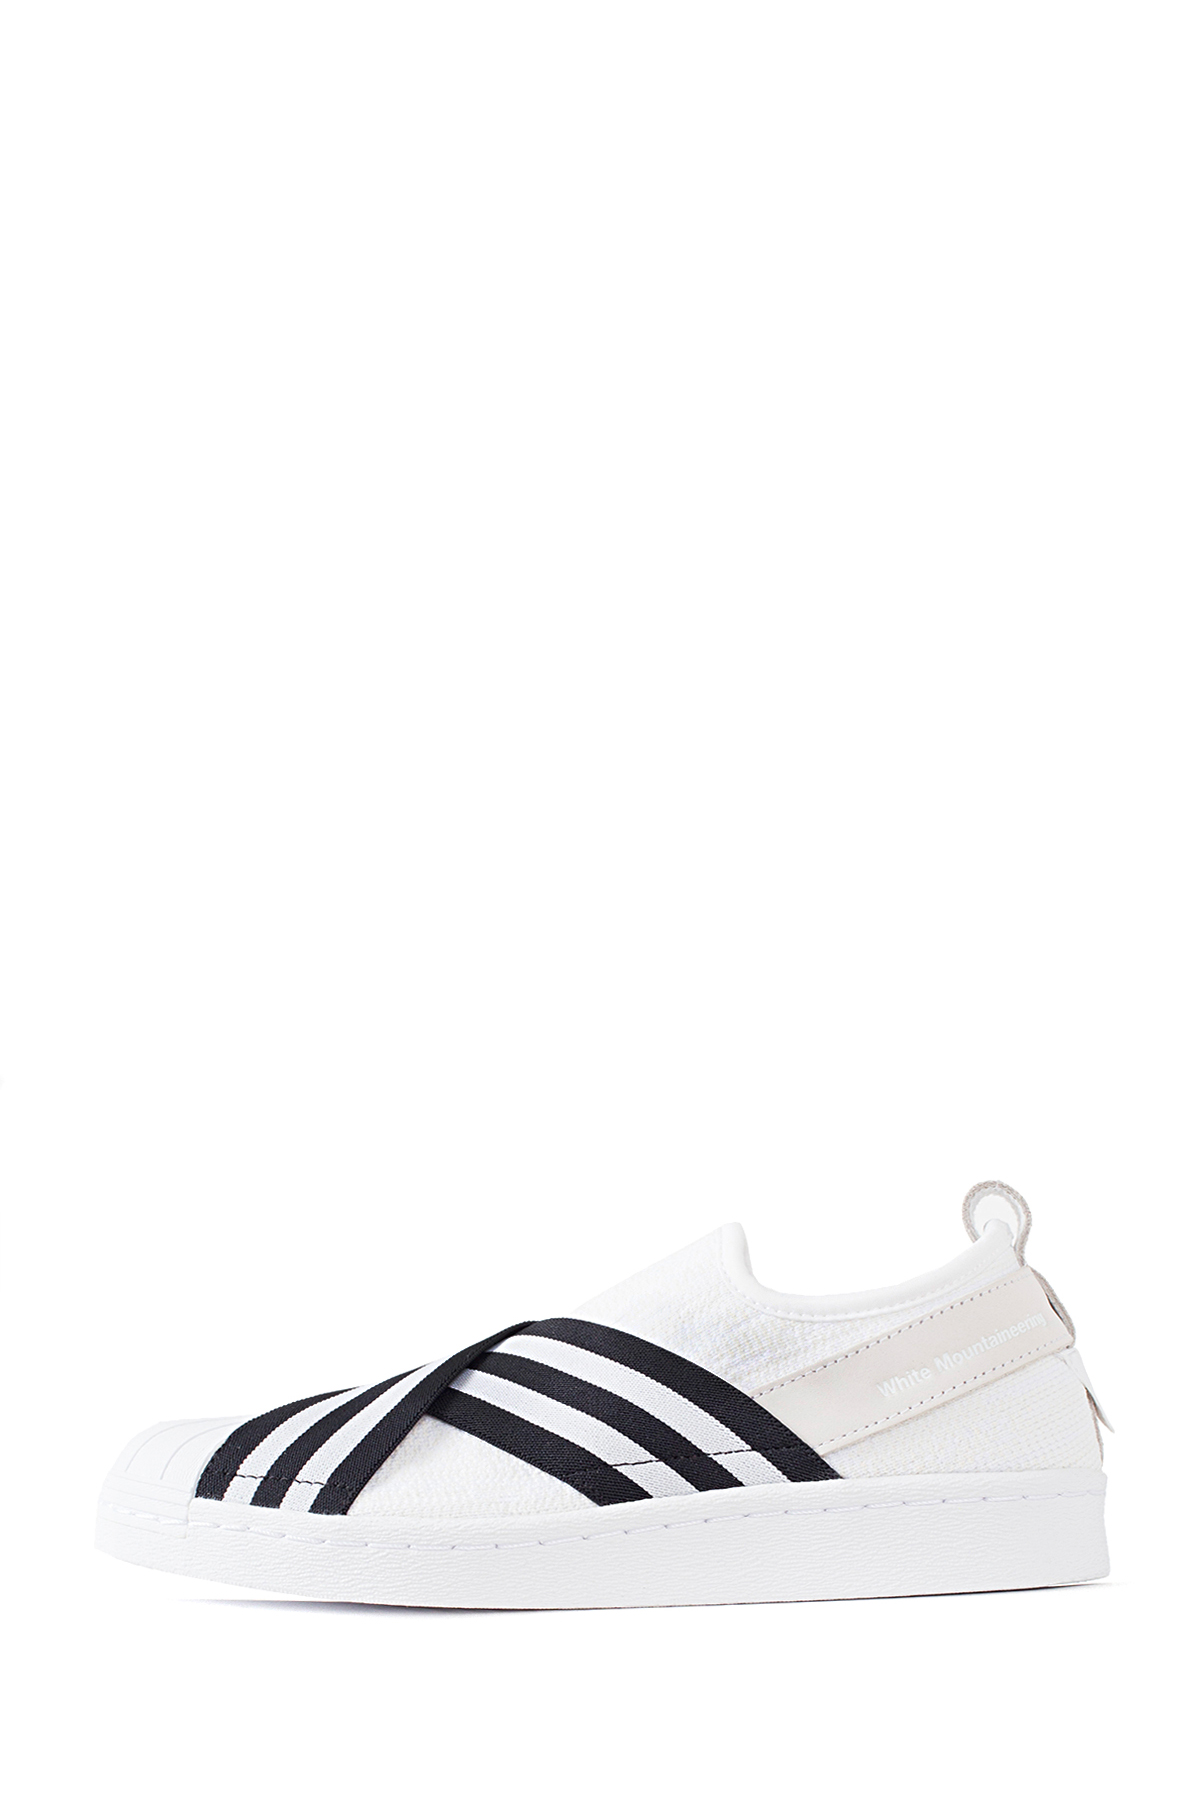 WM x adidas Originals : SUPERSTAR SLIP-ON (White)